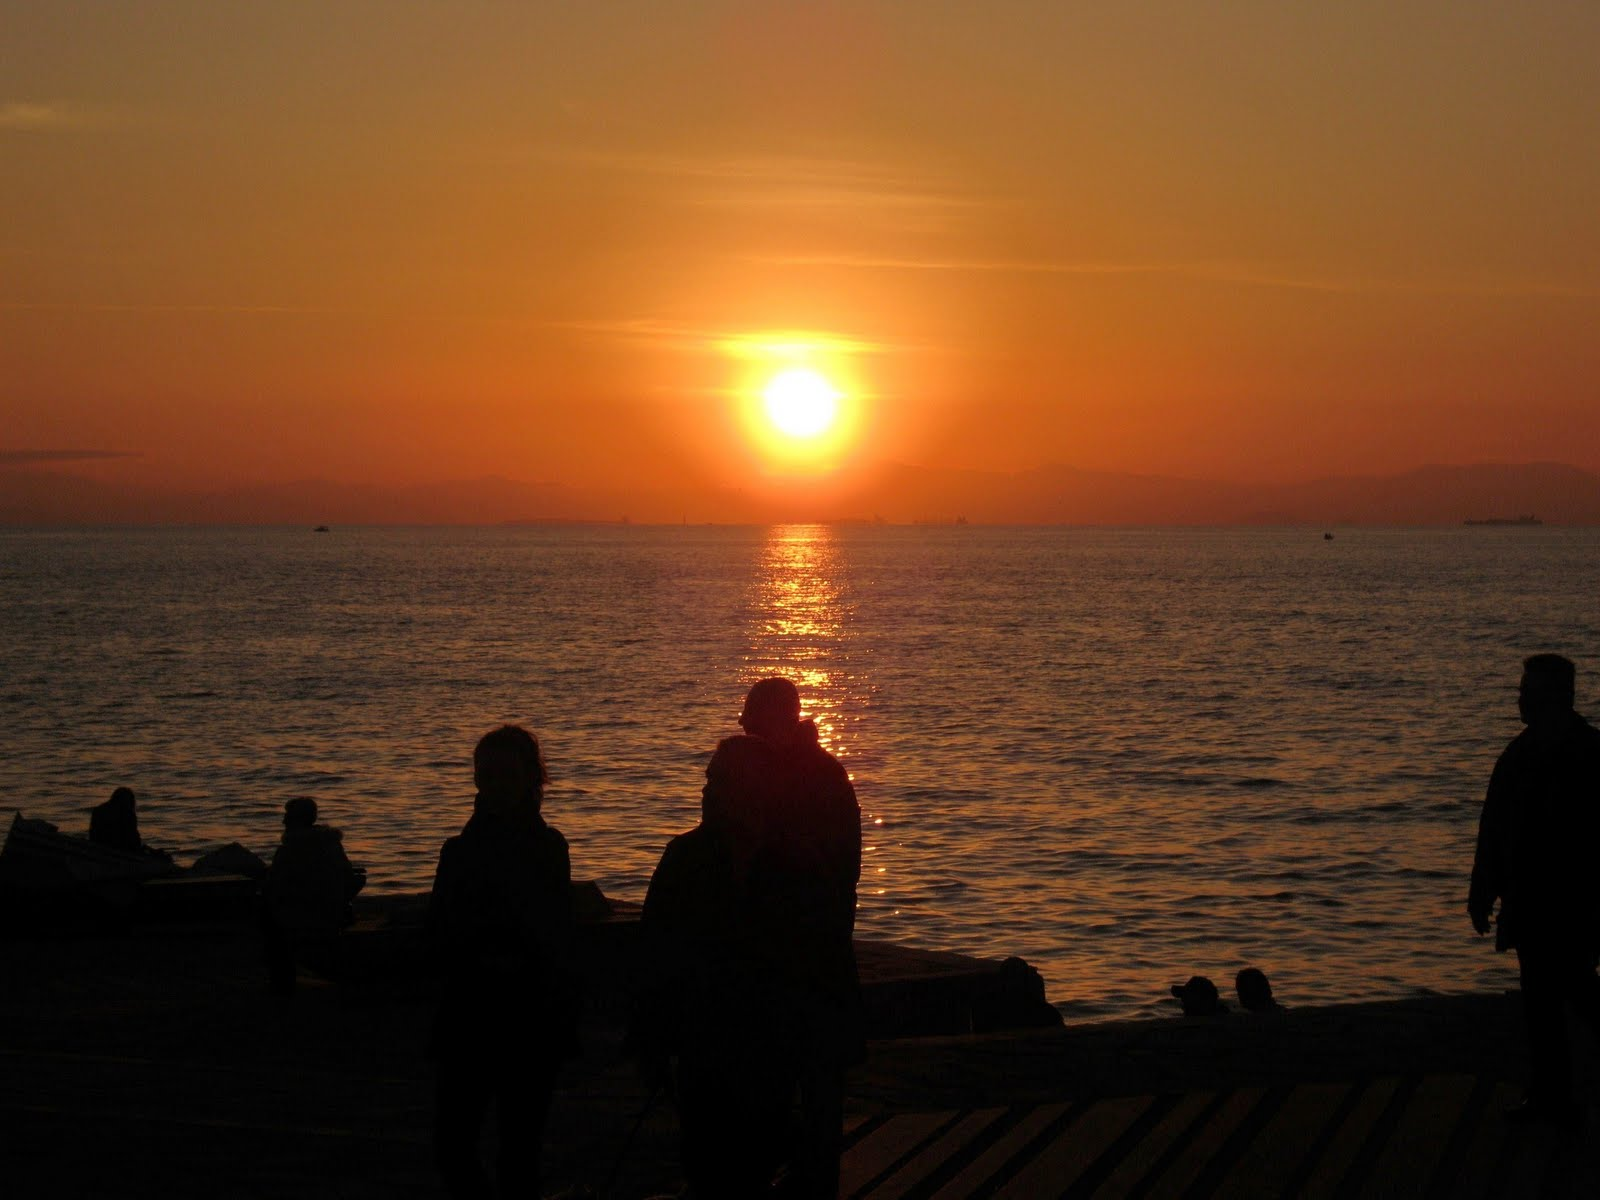 CUT and DRY : How do You Feel When Watching the Sunset